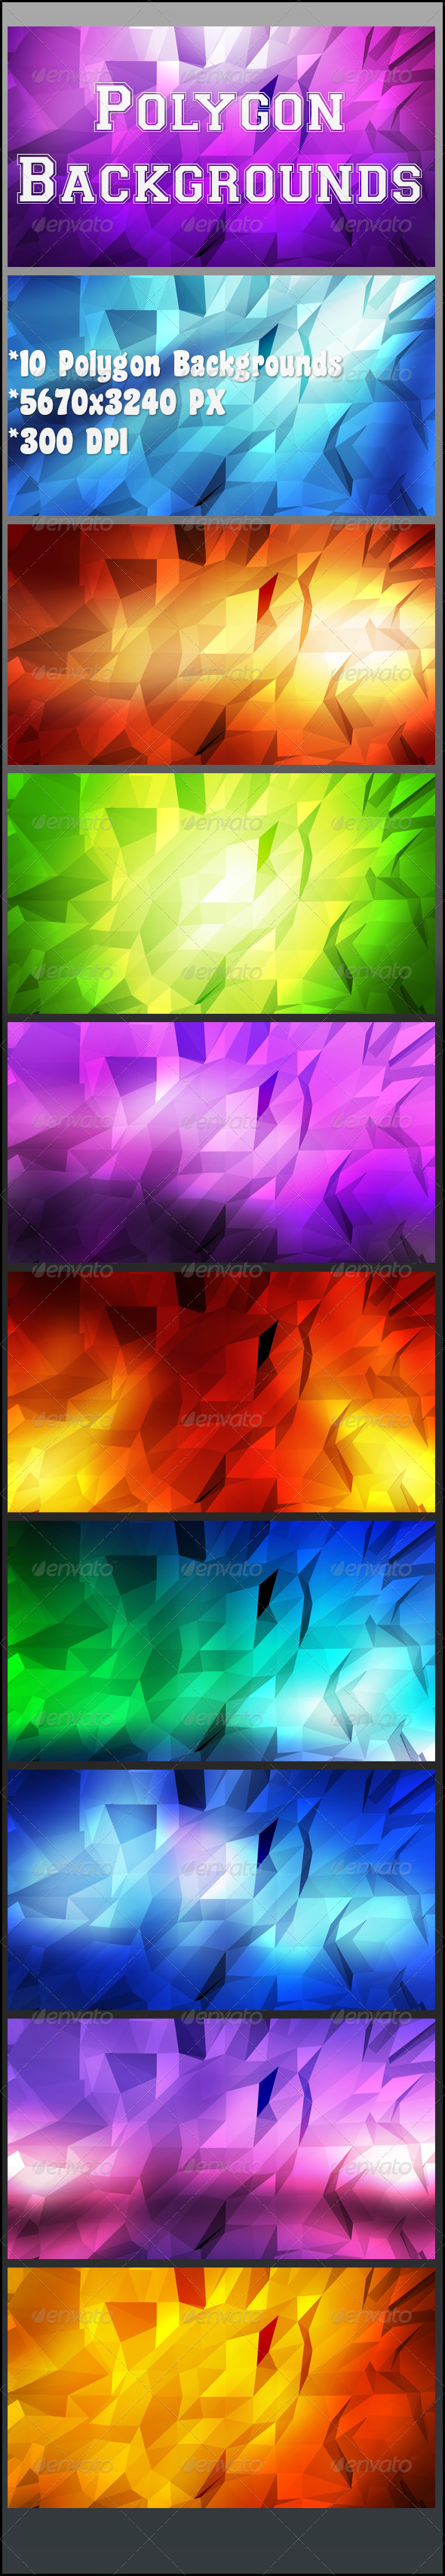 GraphicRiver Polygon Backgrounds 8454295